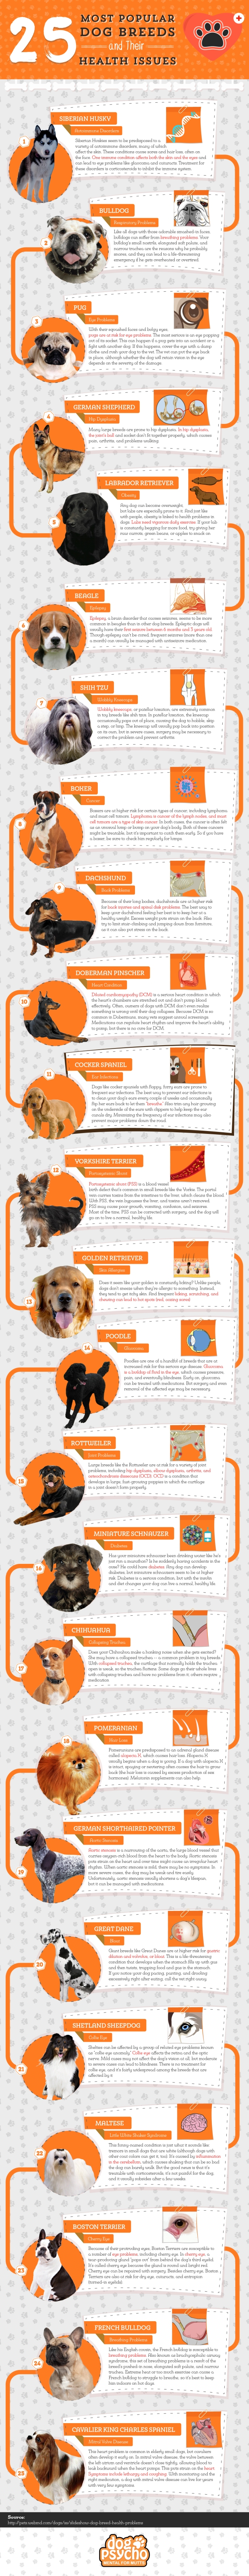 dog breeds health issues